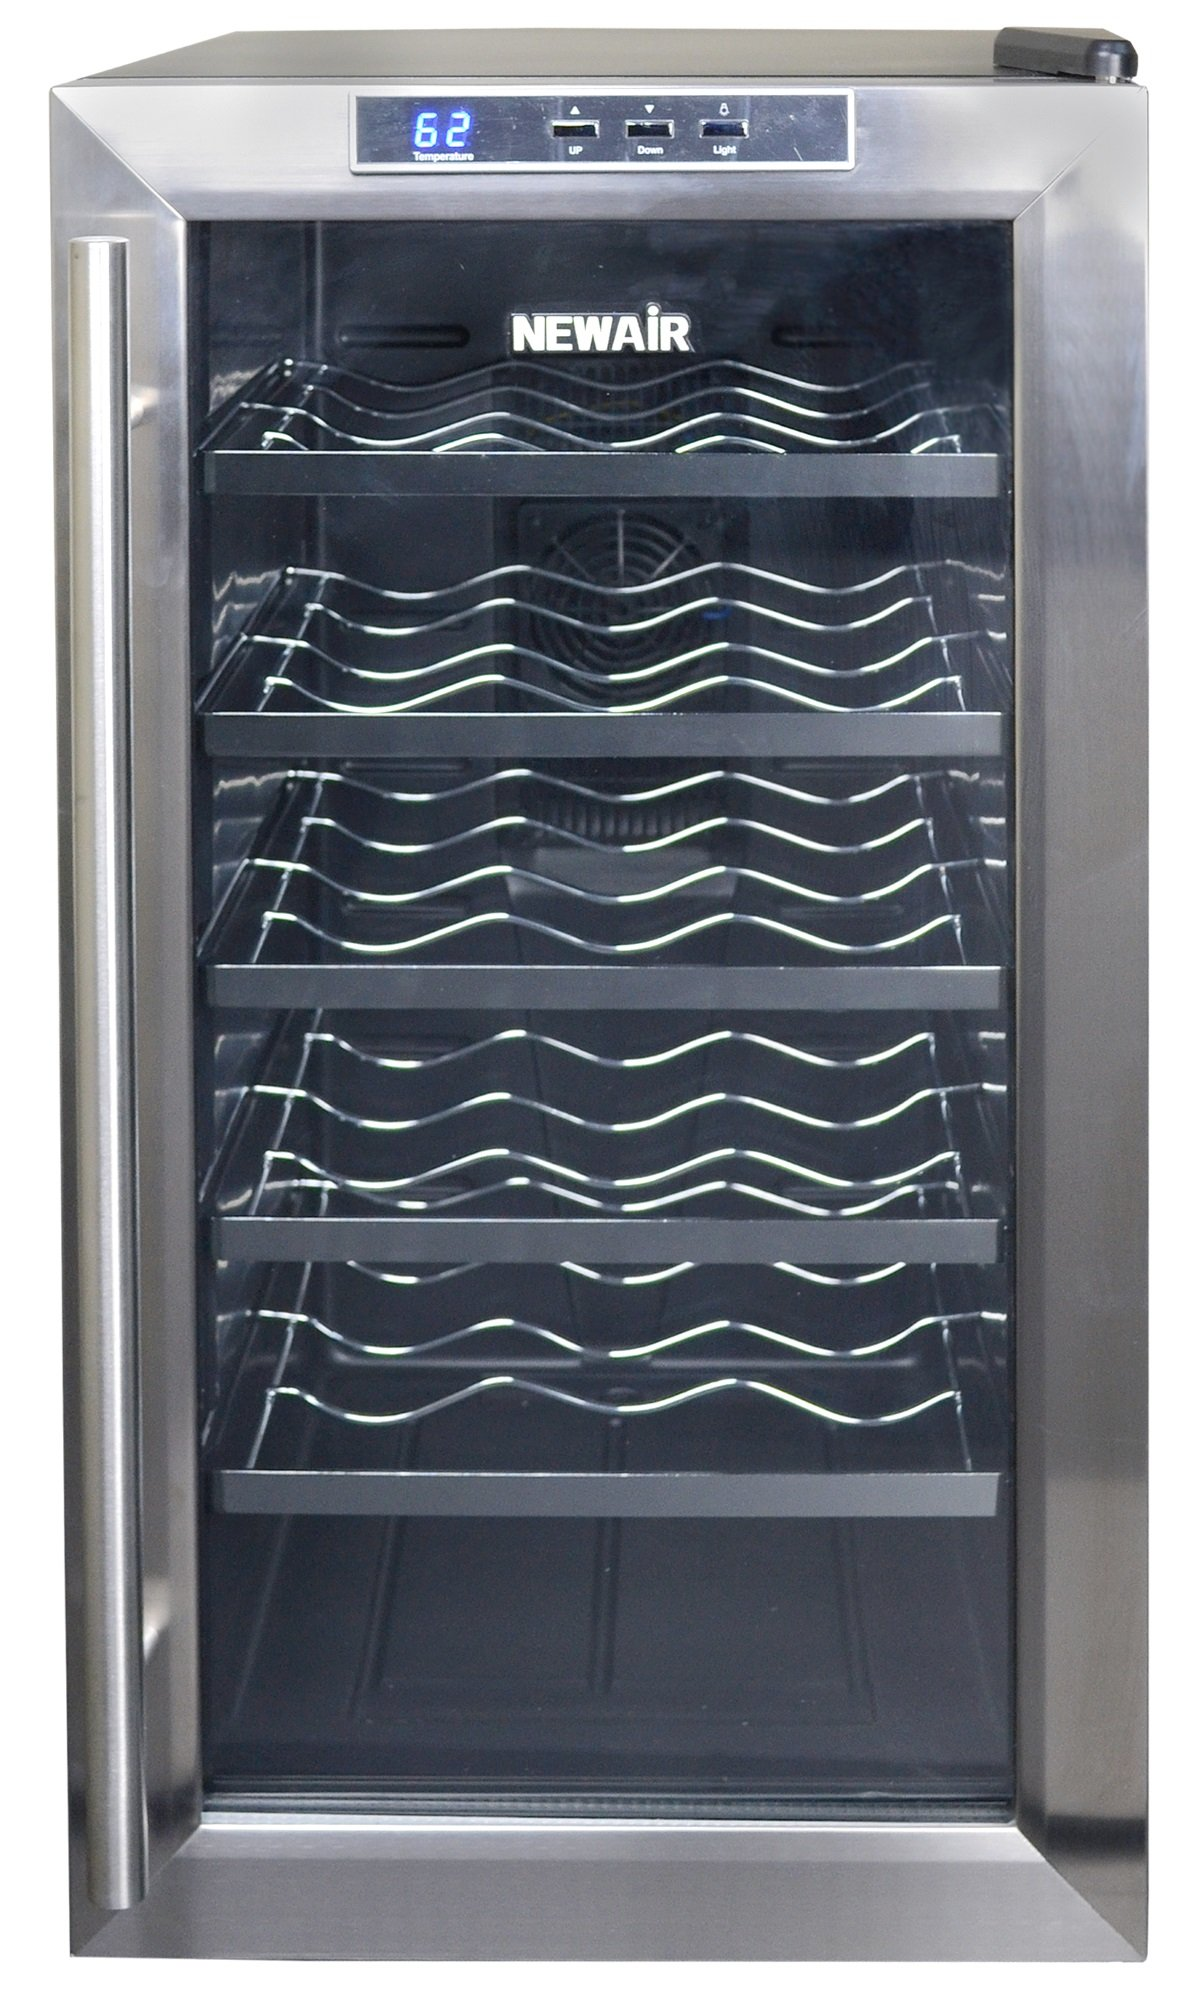 NewAir AW-181E 18 Bottle Thermoelectric Wine Cooler, Black by NewAir (Image #11)